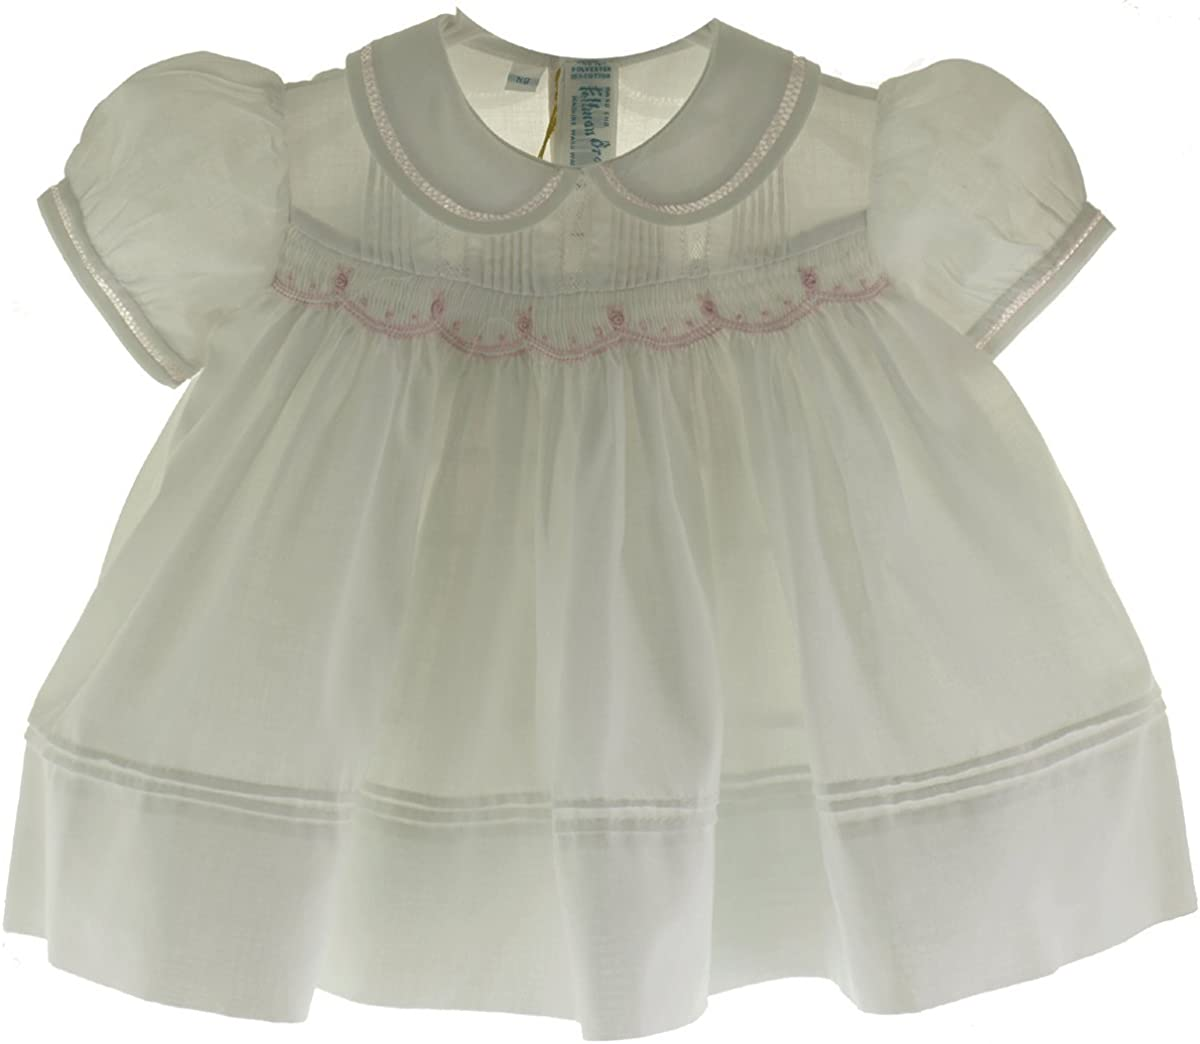 Feltman Brothers Newborn Girls White Smocked Dress with Pink Flowers